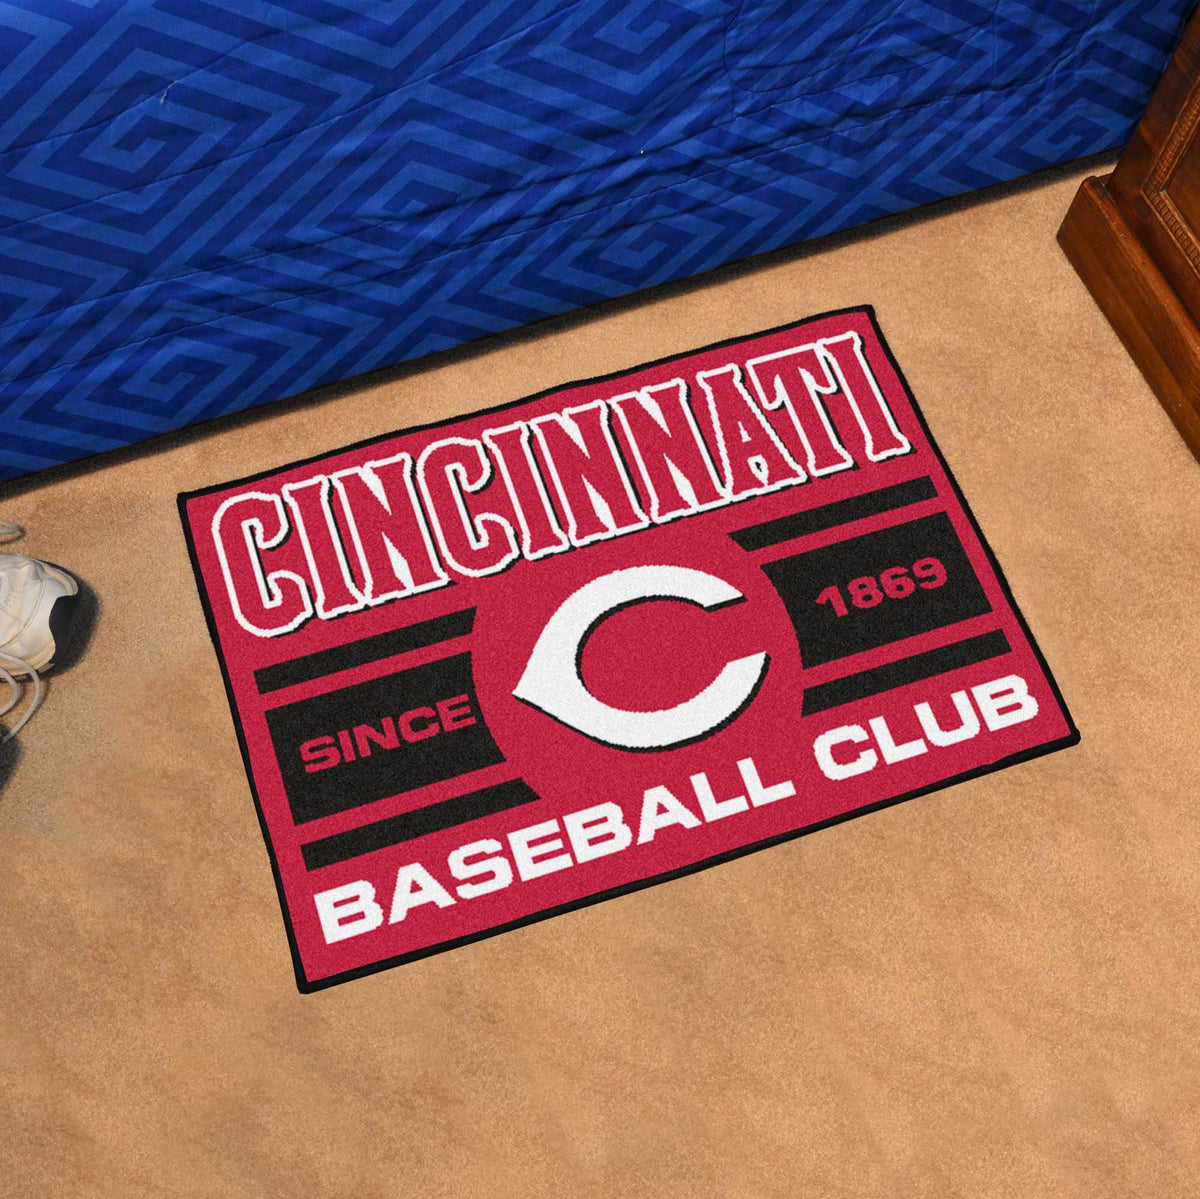 MLB - Uniform Starter Mat MLB Mats, Rectangular Mats, Uniform Starter Mat, MLB, Home Fan Mats Cincinnati Reds